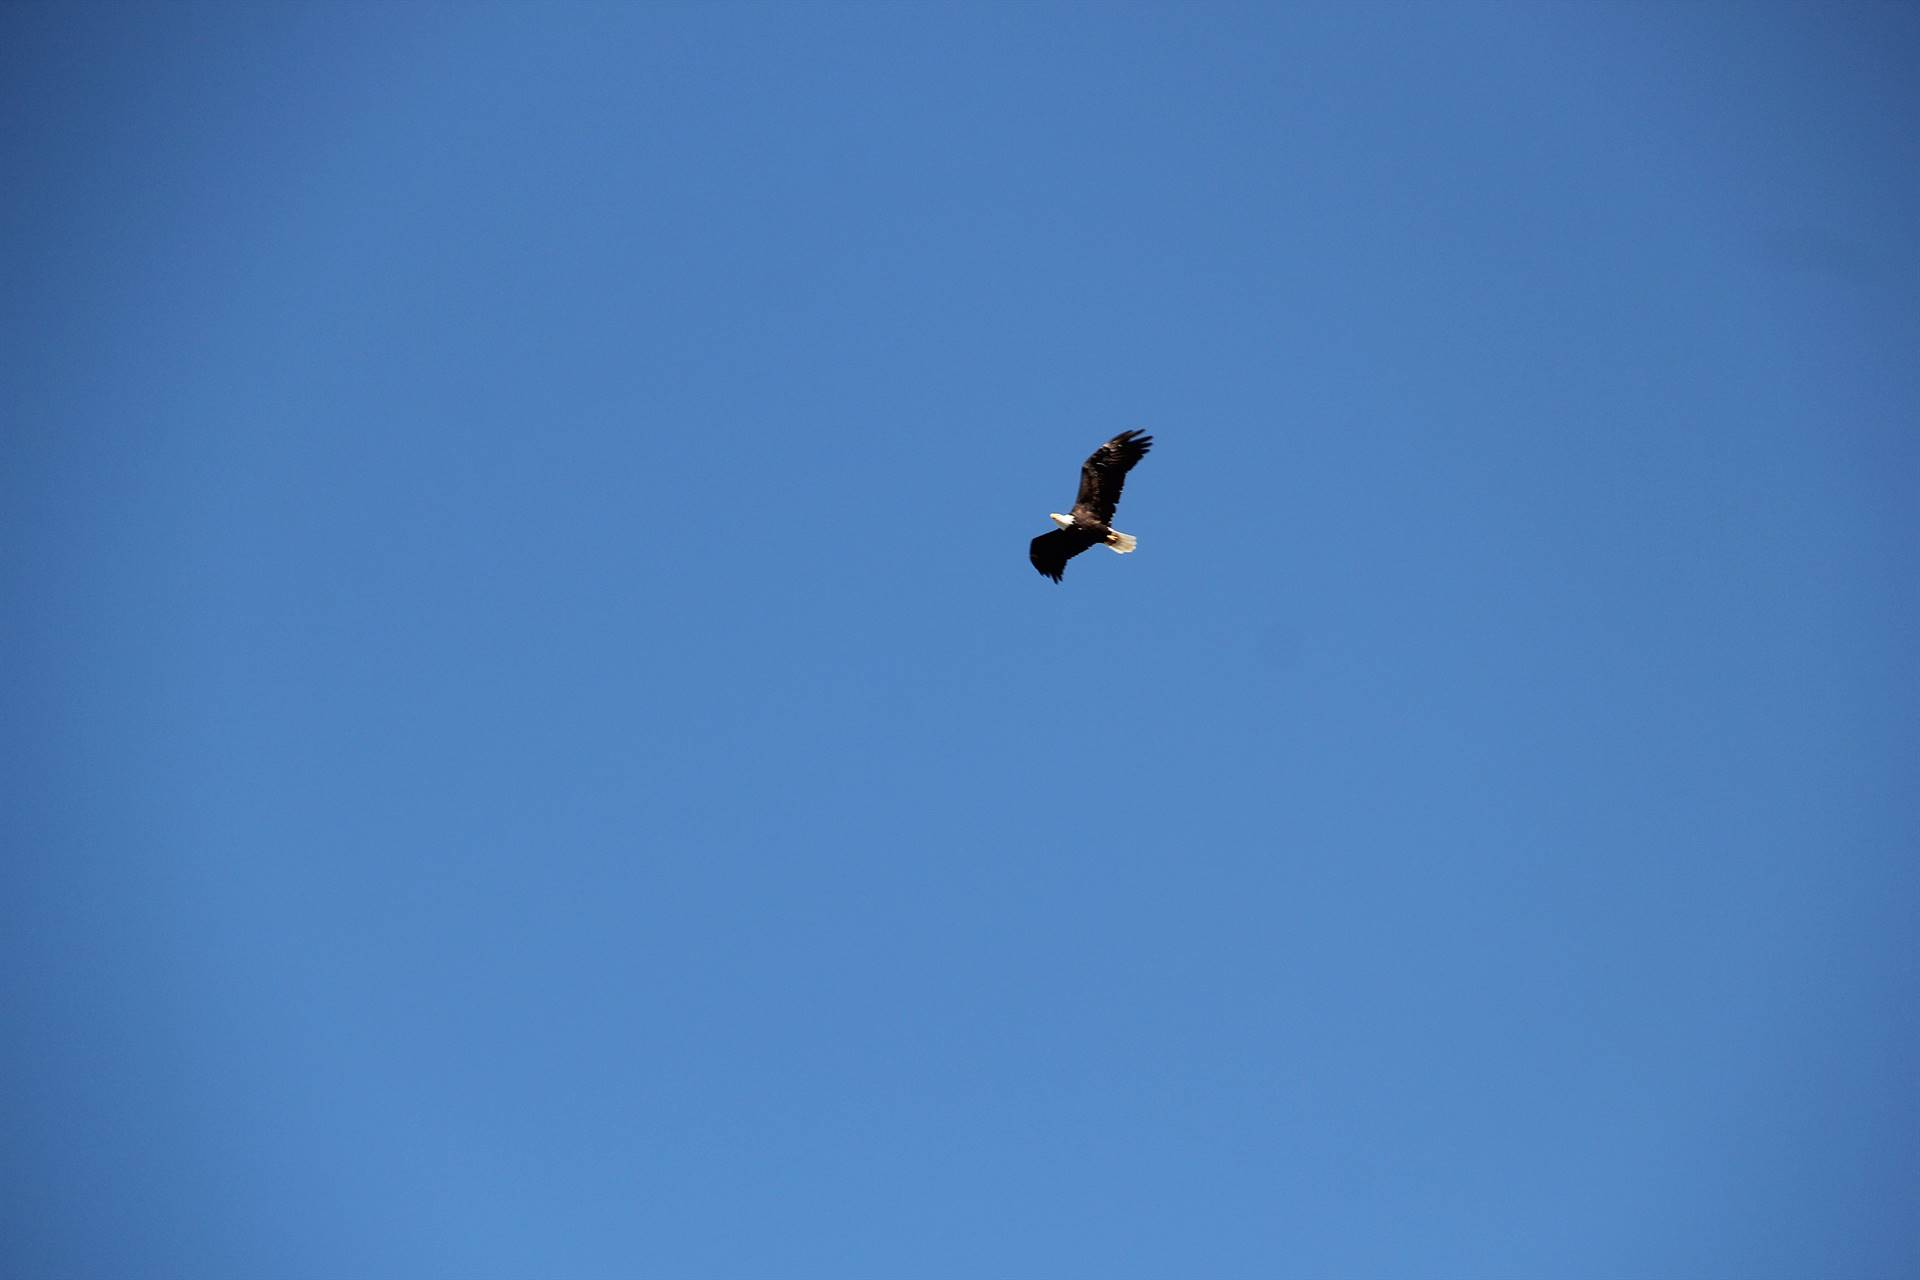 bald eagle flying in air